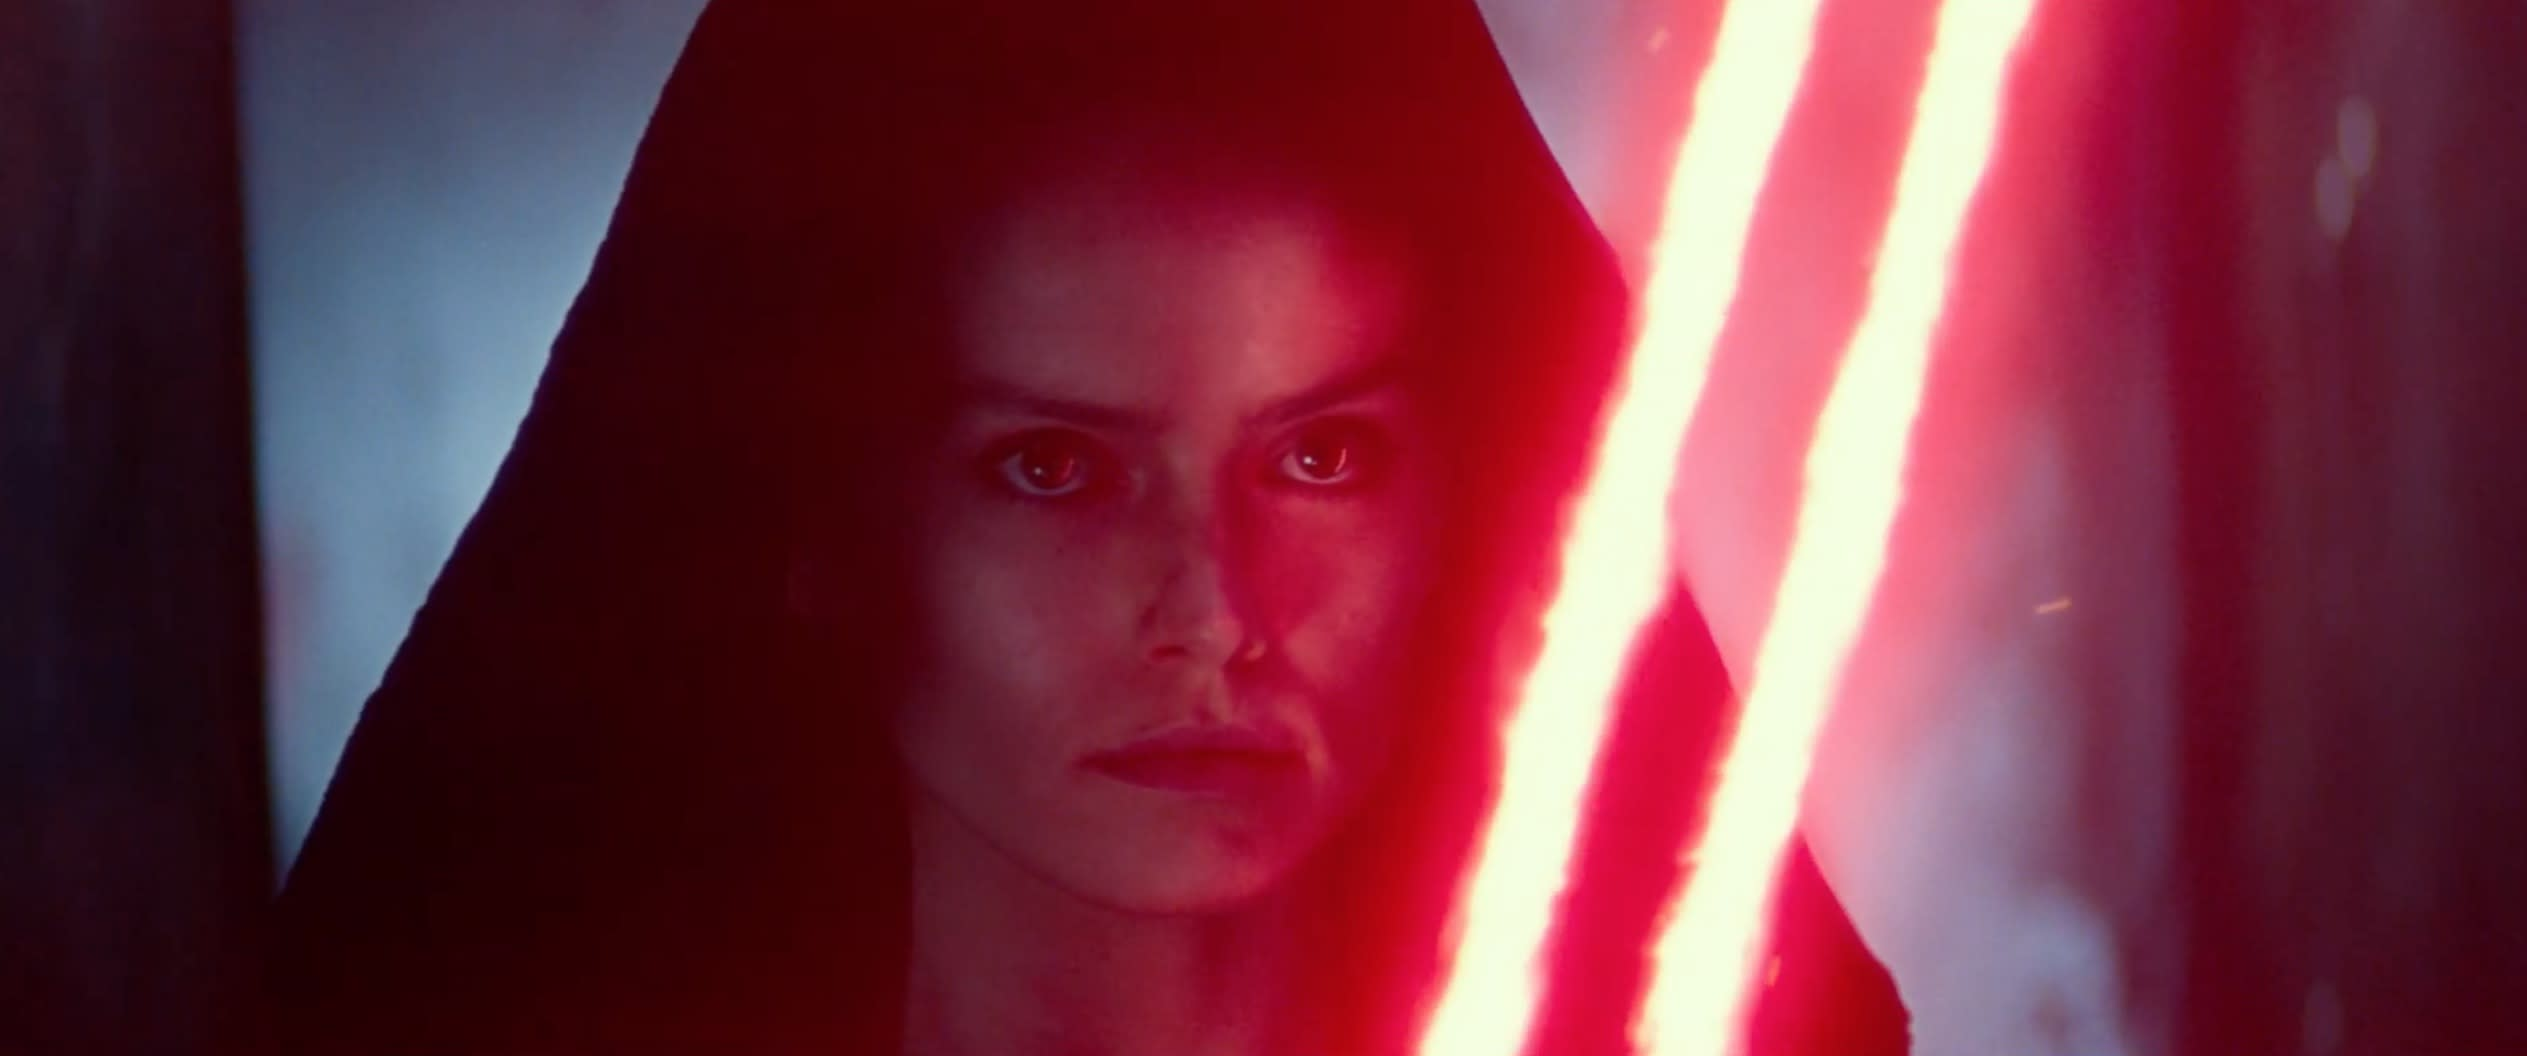 Dark Rey: The surprising 'Star Wars: Rise Of Skywalker' fan